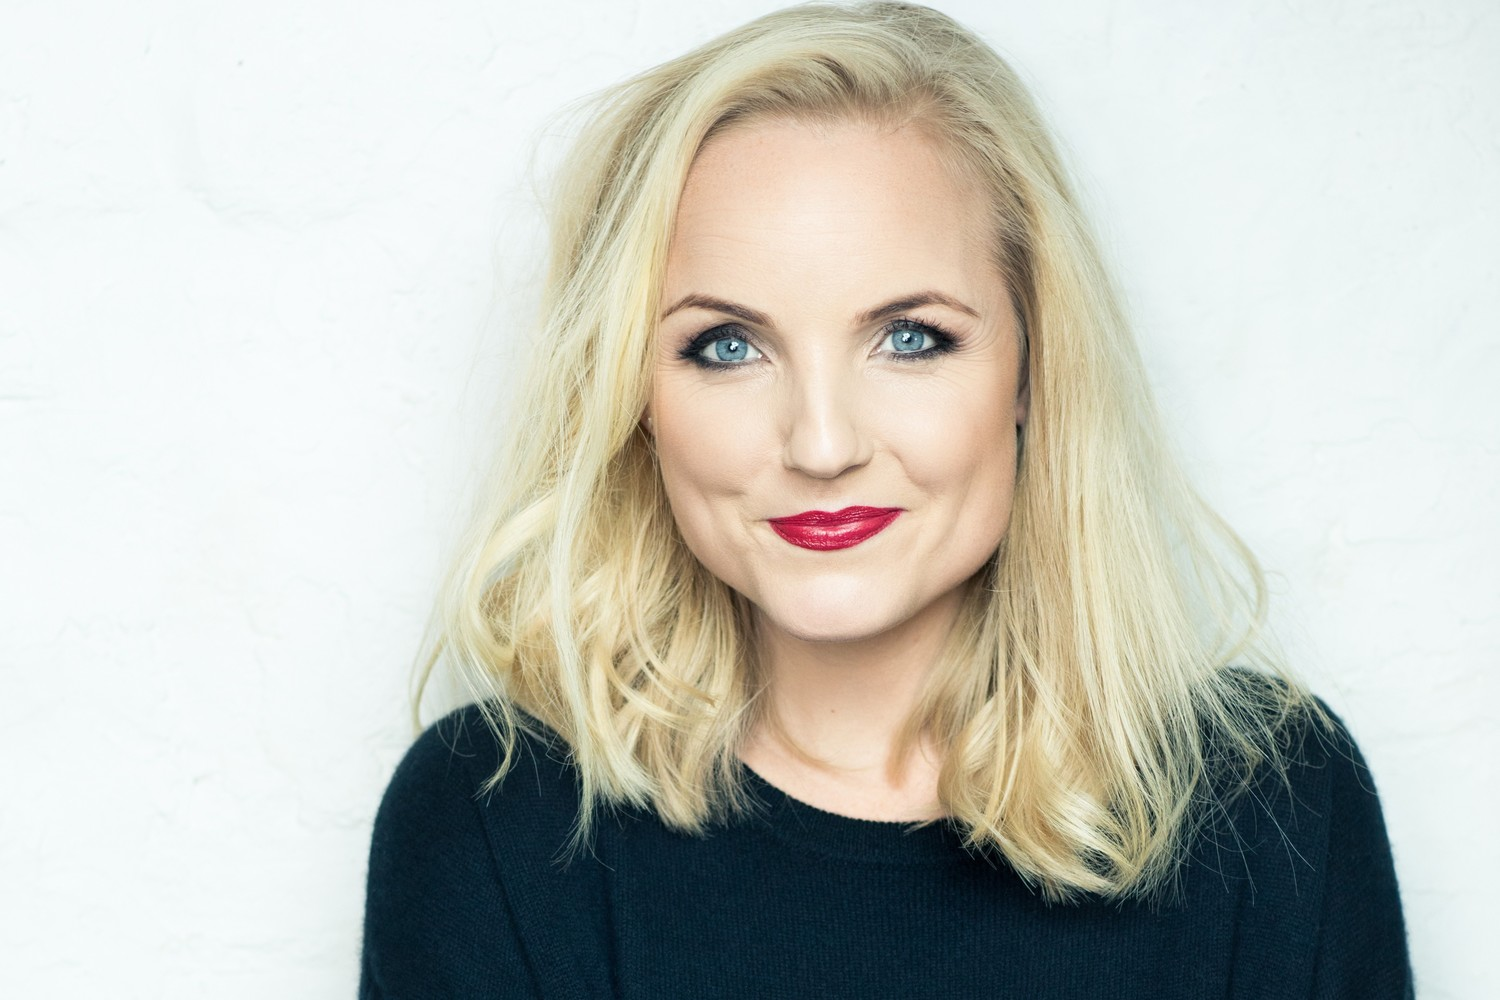 BWW Interview: Kerry Ellis Discusses Her Live At Zedel Residency